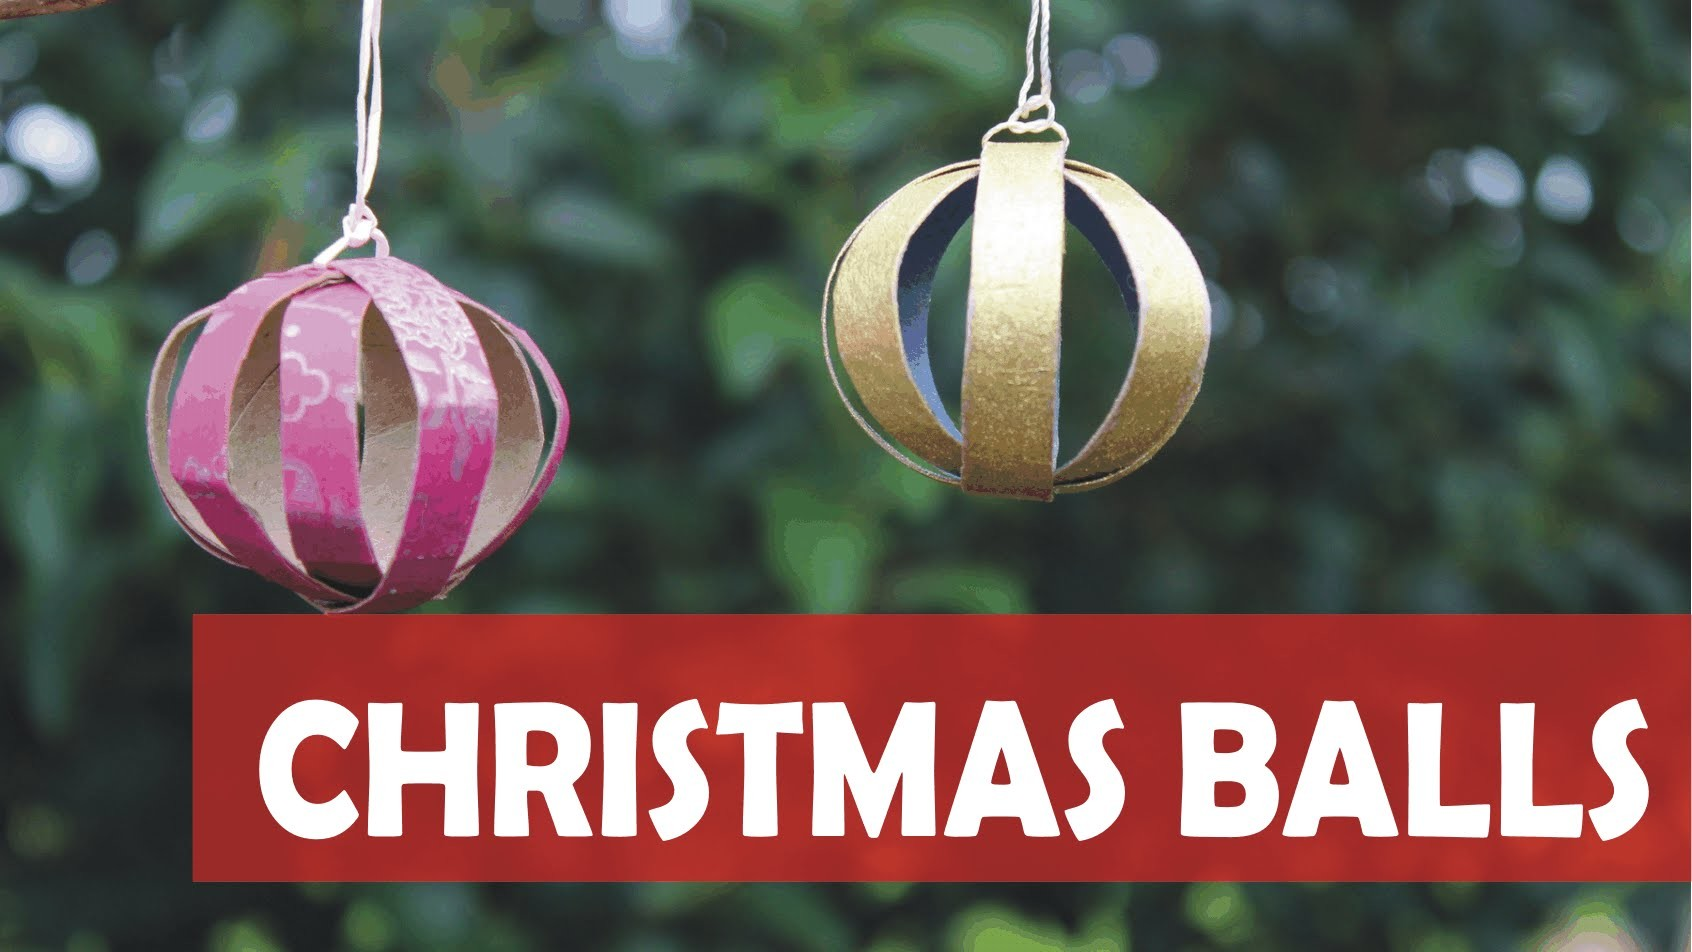 How to make a Christmas ball tree ornament from toilet paper rolls